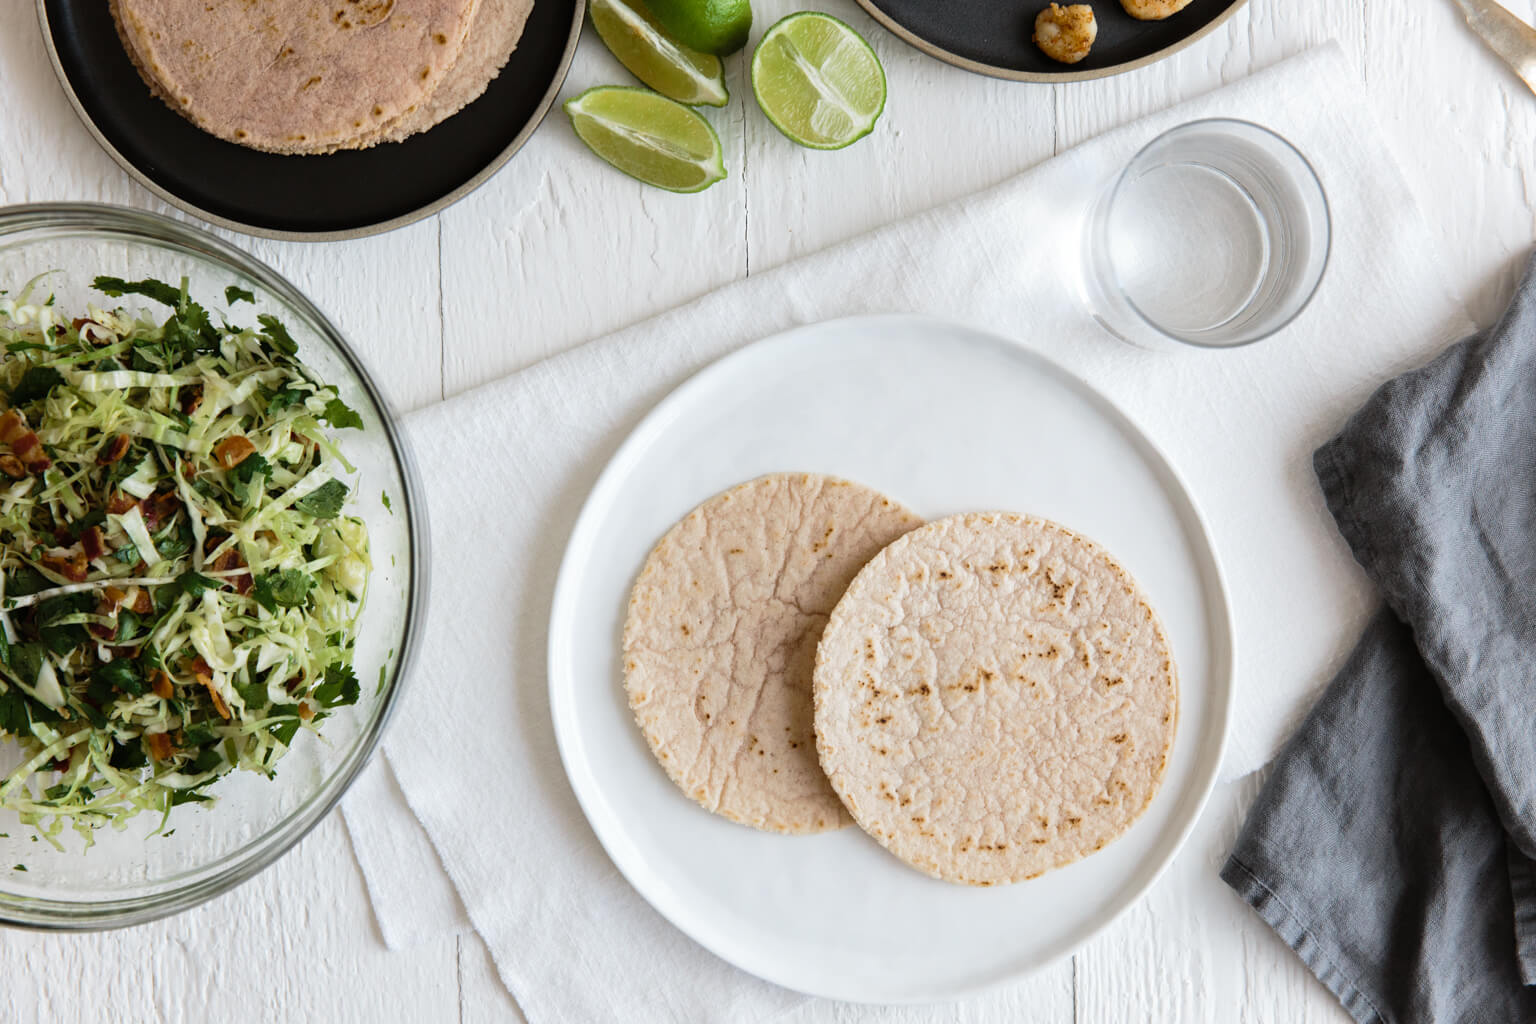 How to make cassava flour tortillas (plus an easy step-by-step video tutorial!). These tortillas are gluten-free, grain-free and paleo-friendly.